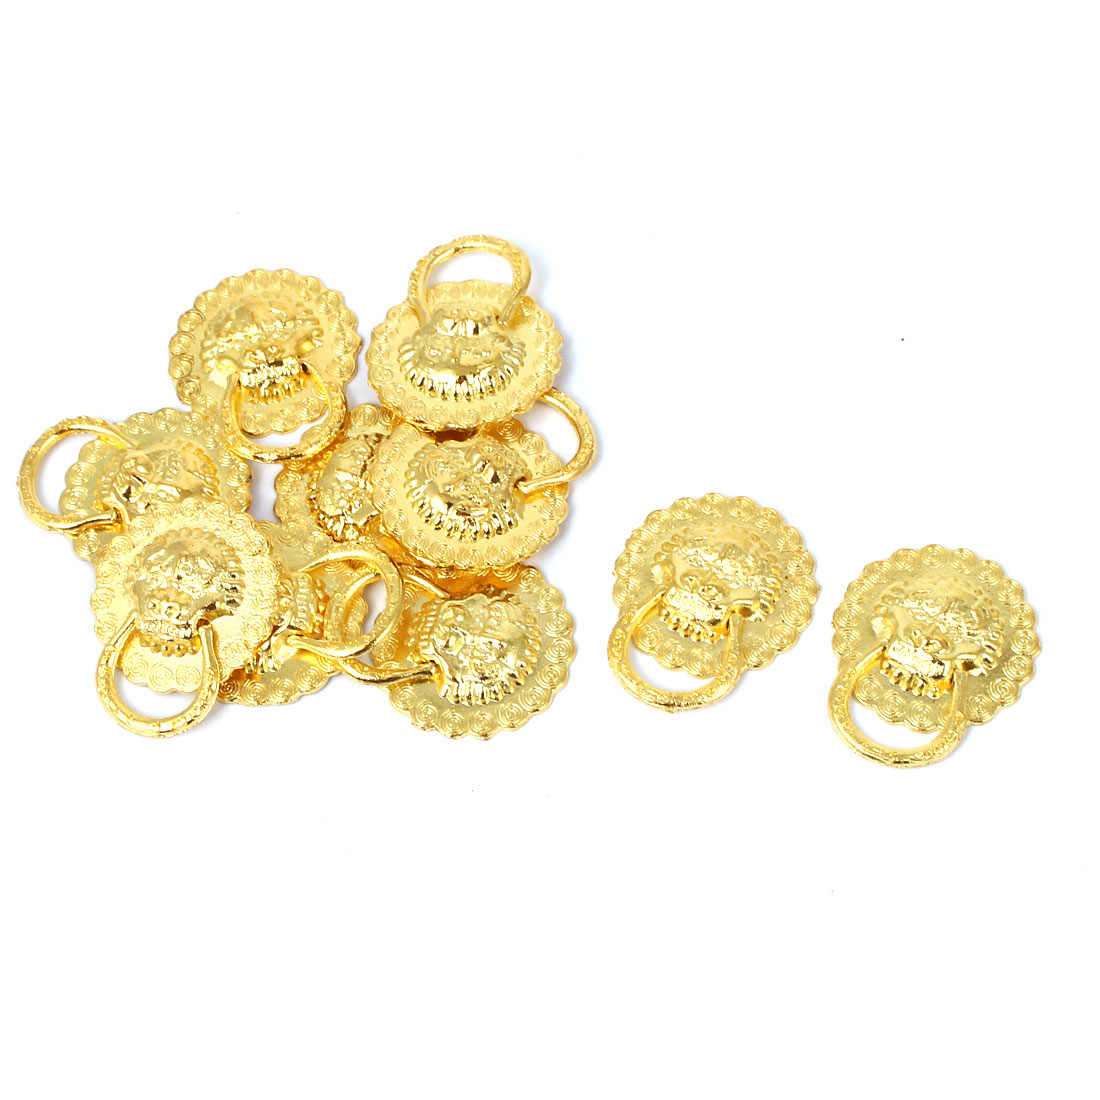 Suitcase Box Wardrobe Drawer Decotaive Lion Head Ring Pull Handle Gold Tone 10pcs